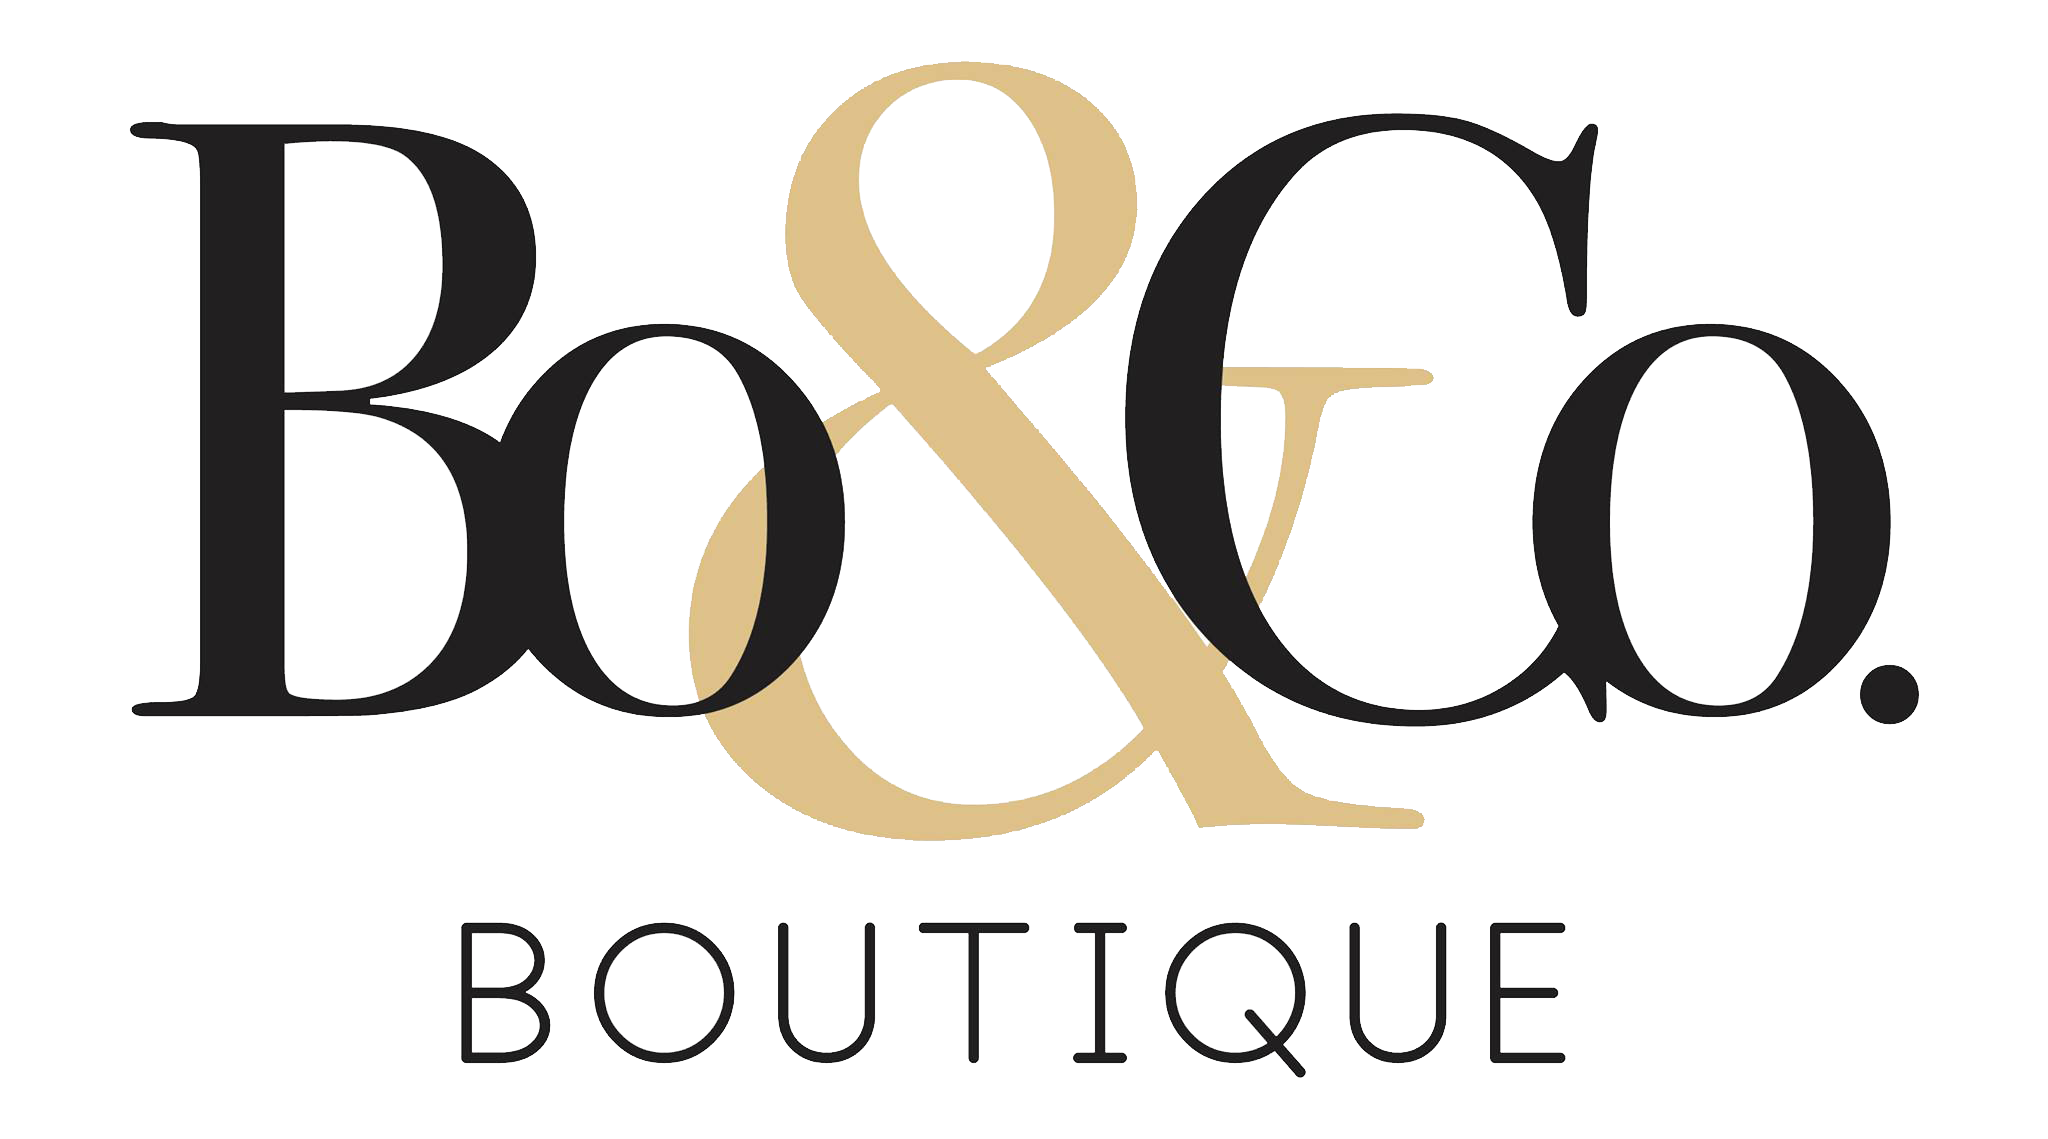 Bo & Co. Boutique